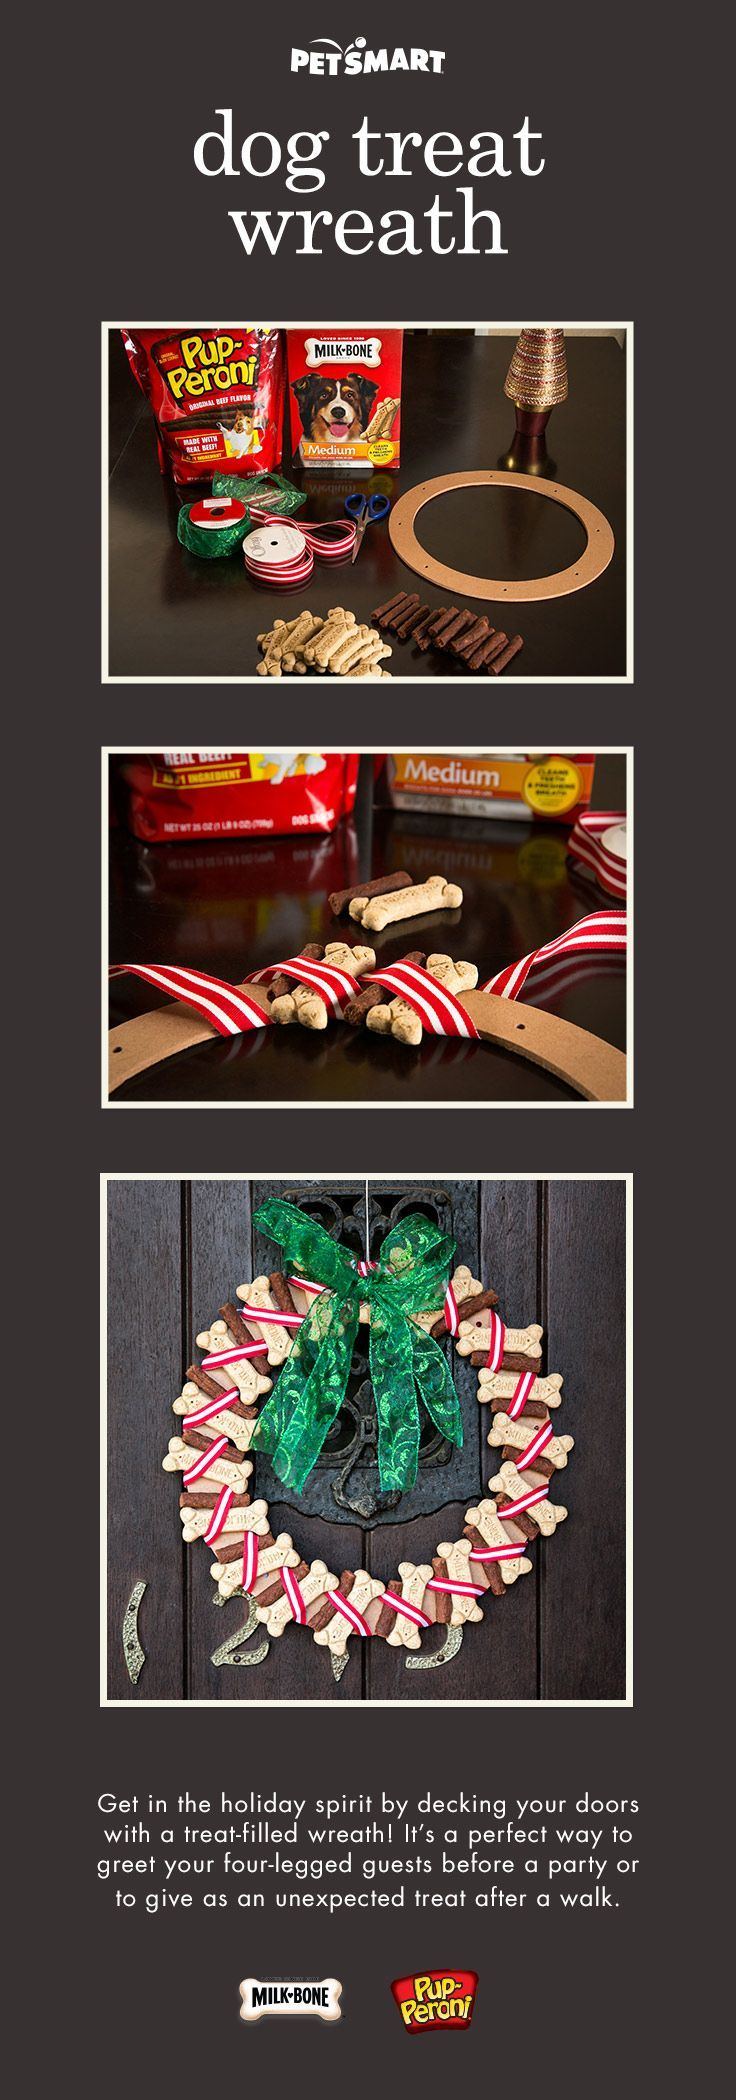 Keep your dog treats handy and festive with this DIY treat wreath!